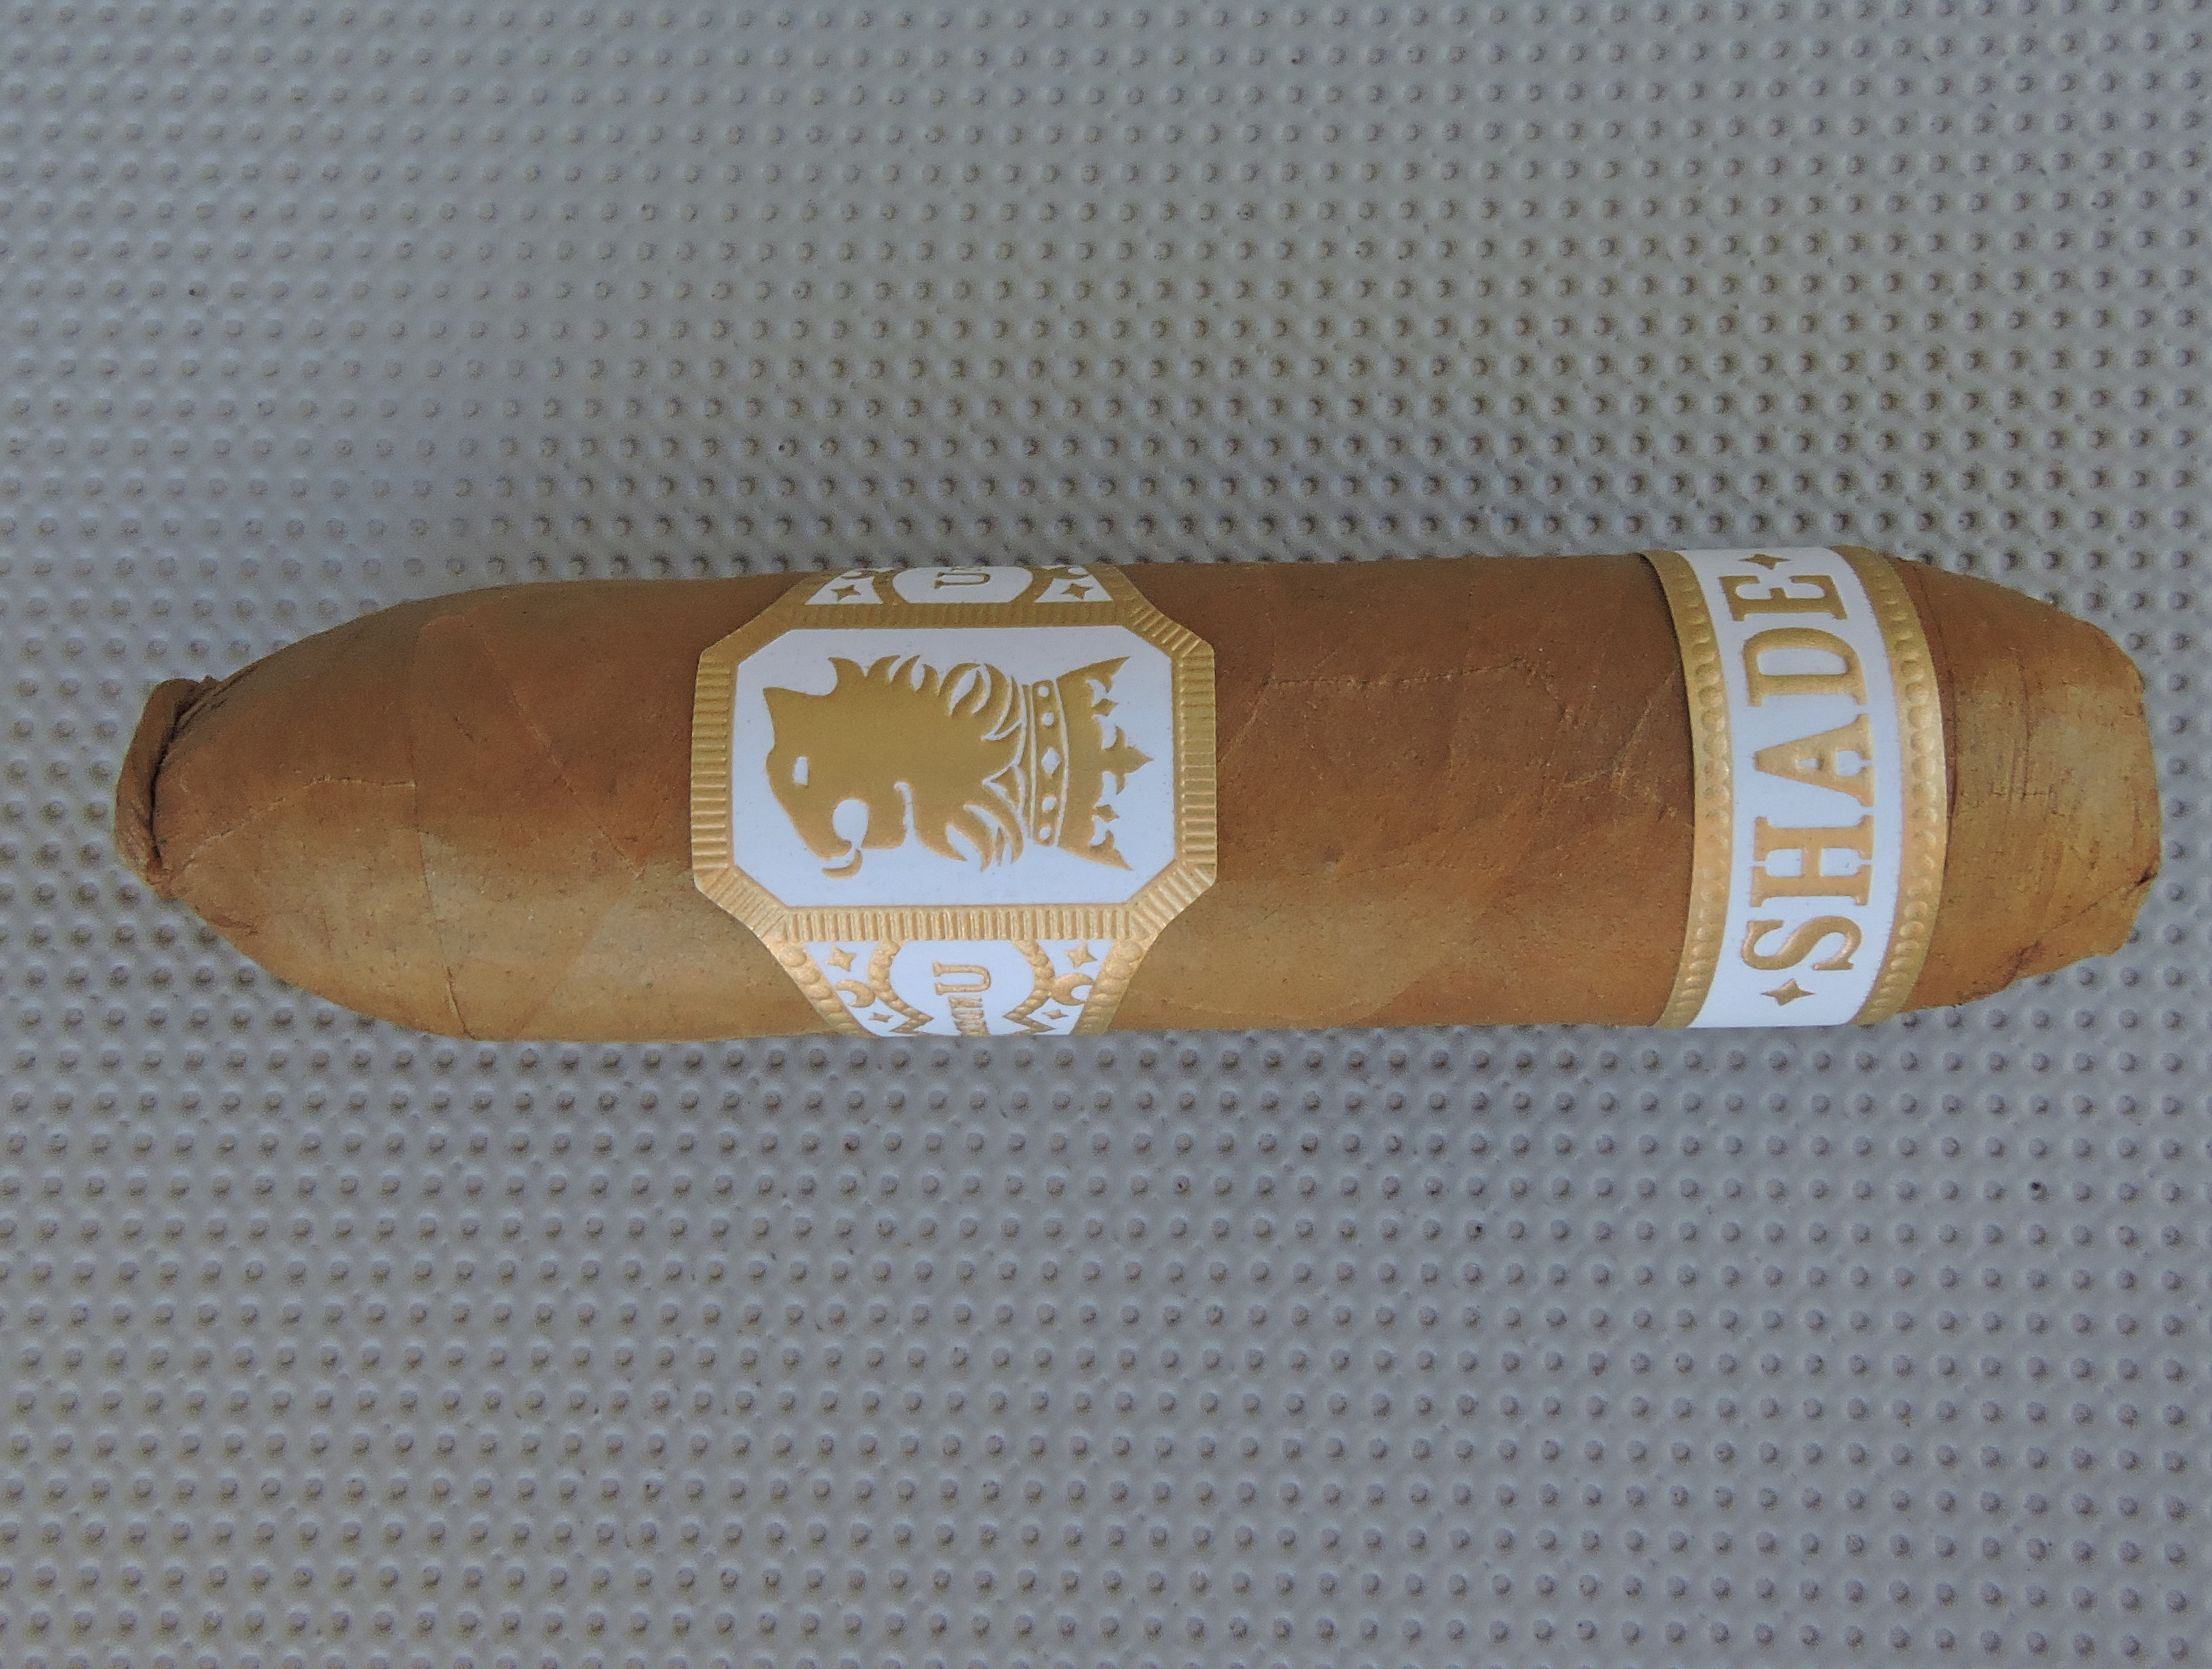 Cigar Review: Drew Estate Undercrown Shade Flying Pig